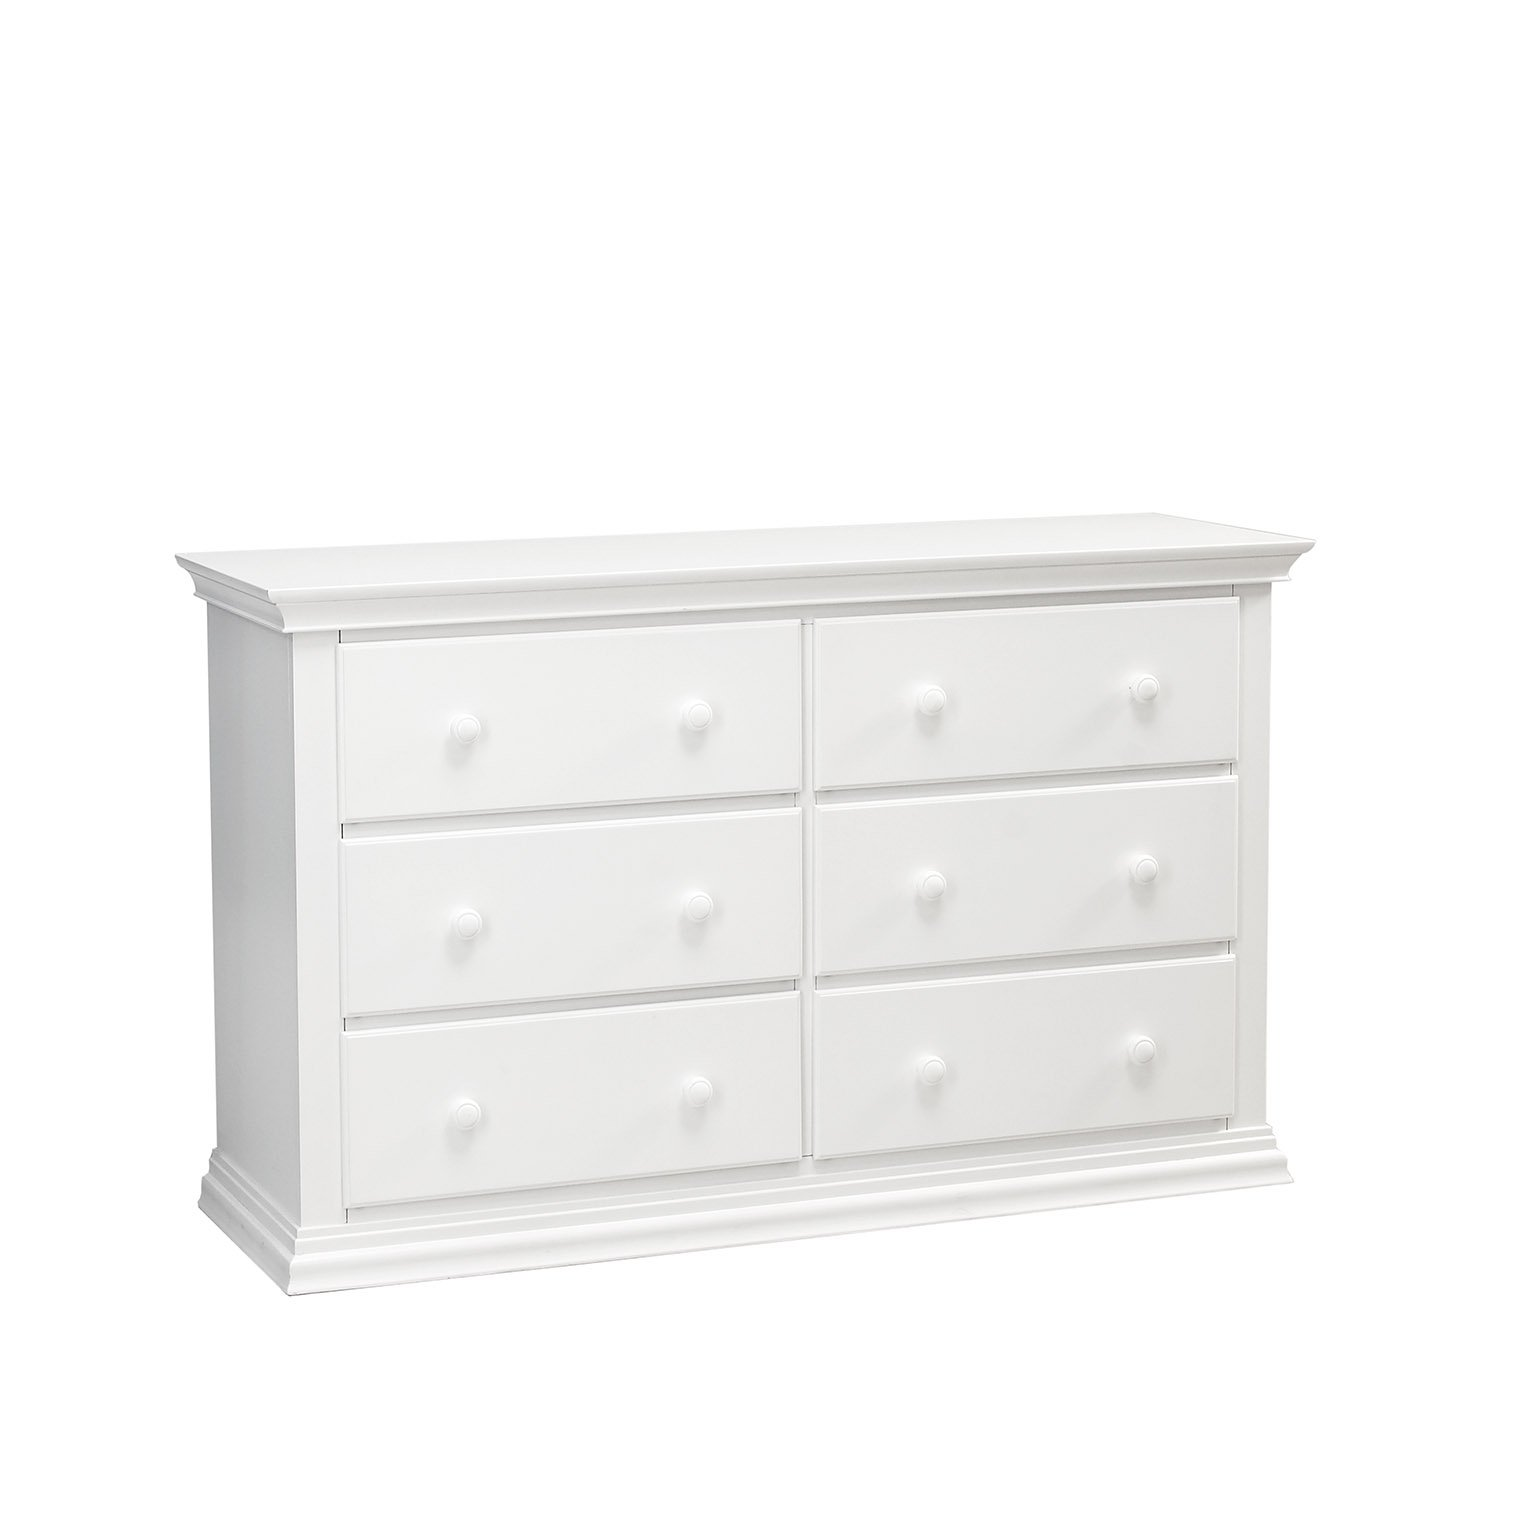 Baby Cache Greenwich 6 Drawer Double Dresser White